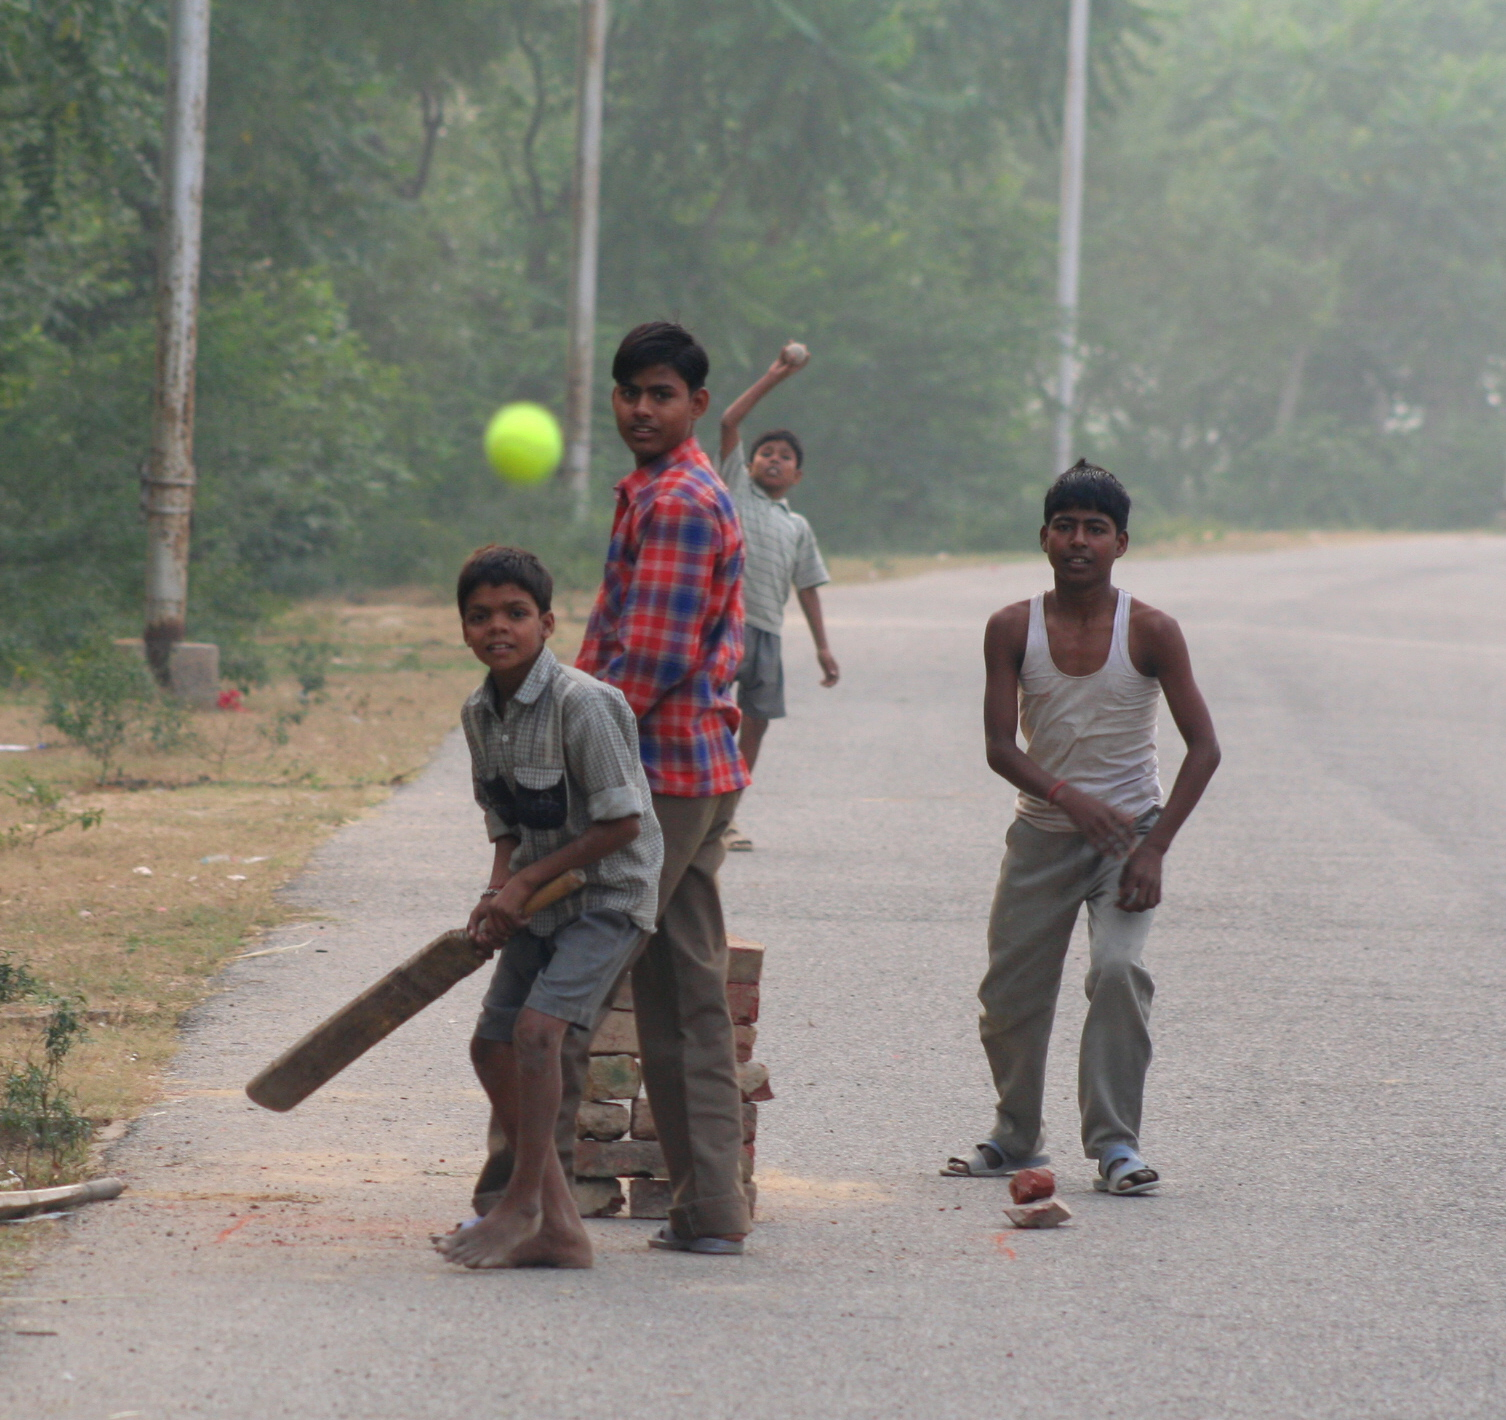 Playing Cricket